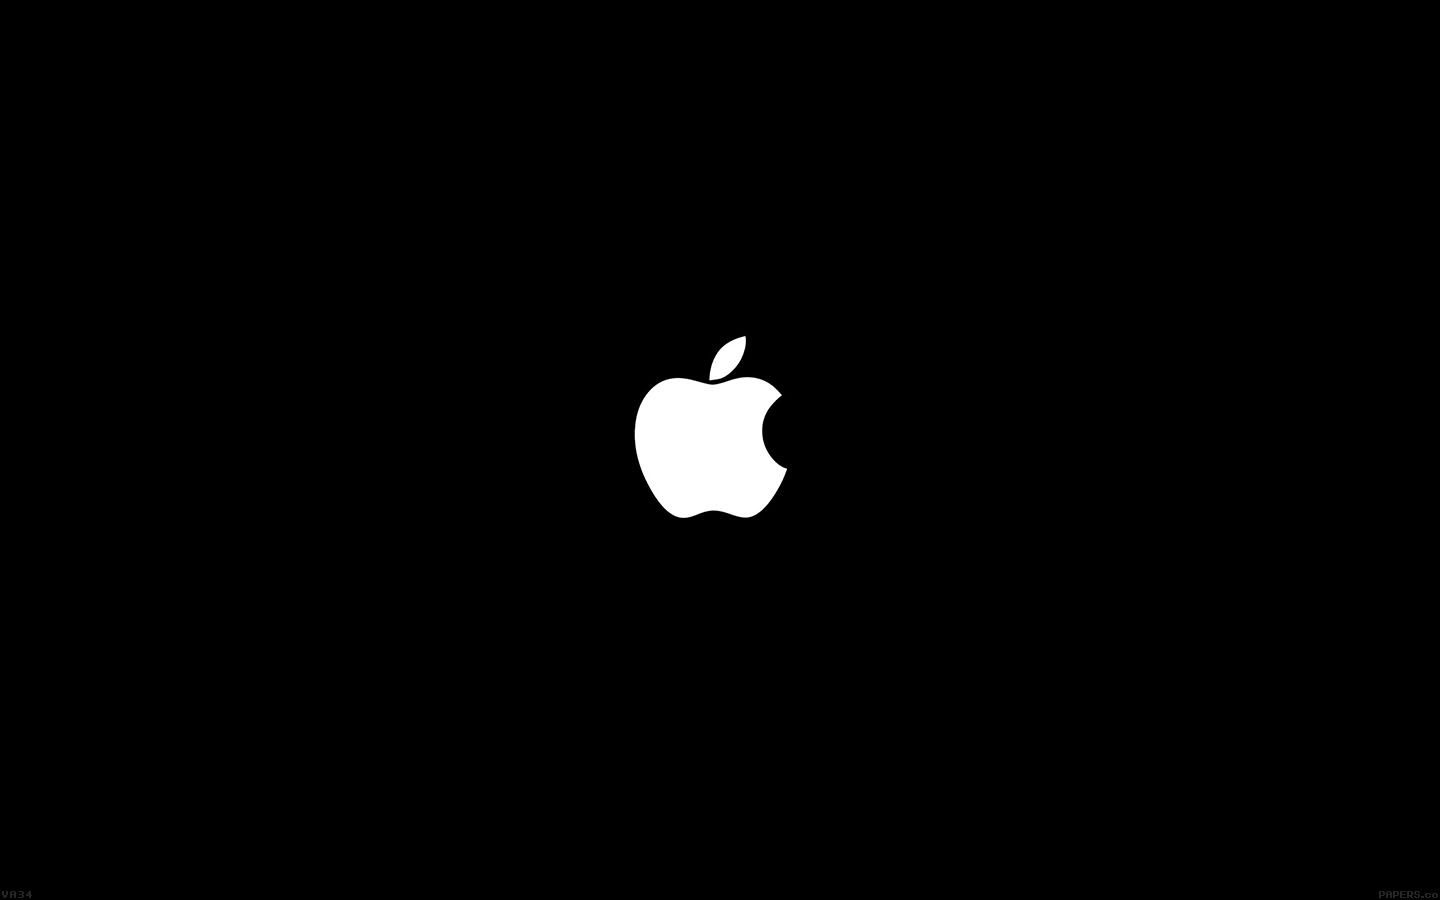 apple company 2 essay Free essays q&a faq search or hire a writer create a message sign up for free sign in search the service is 100% legal search on studentshare the service .